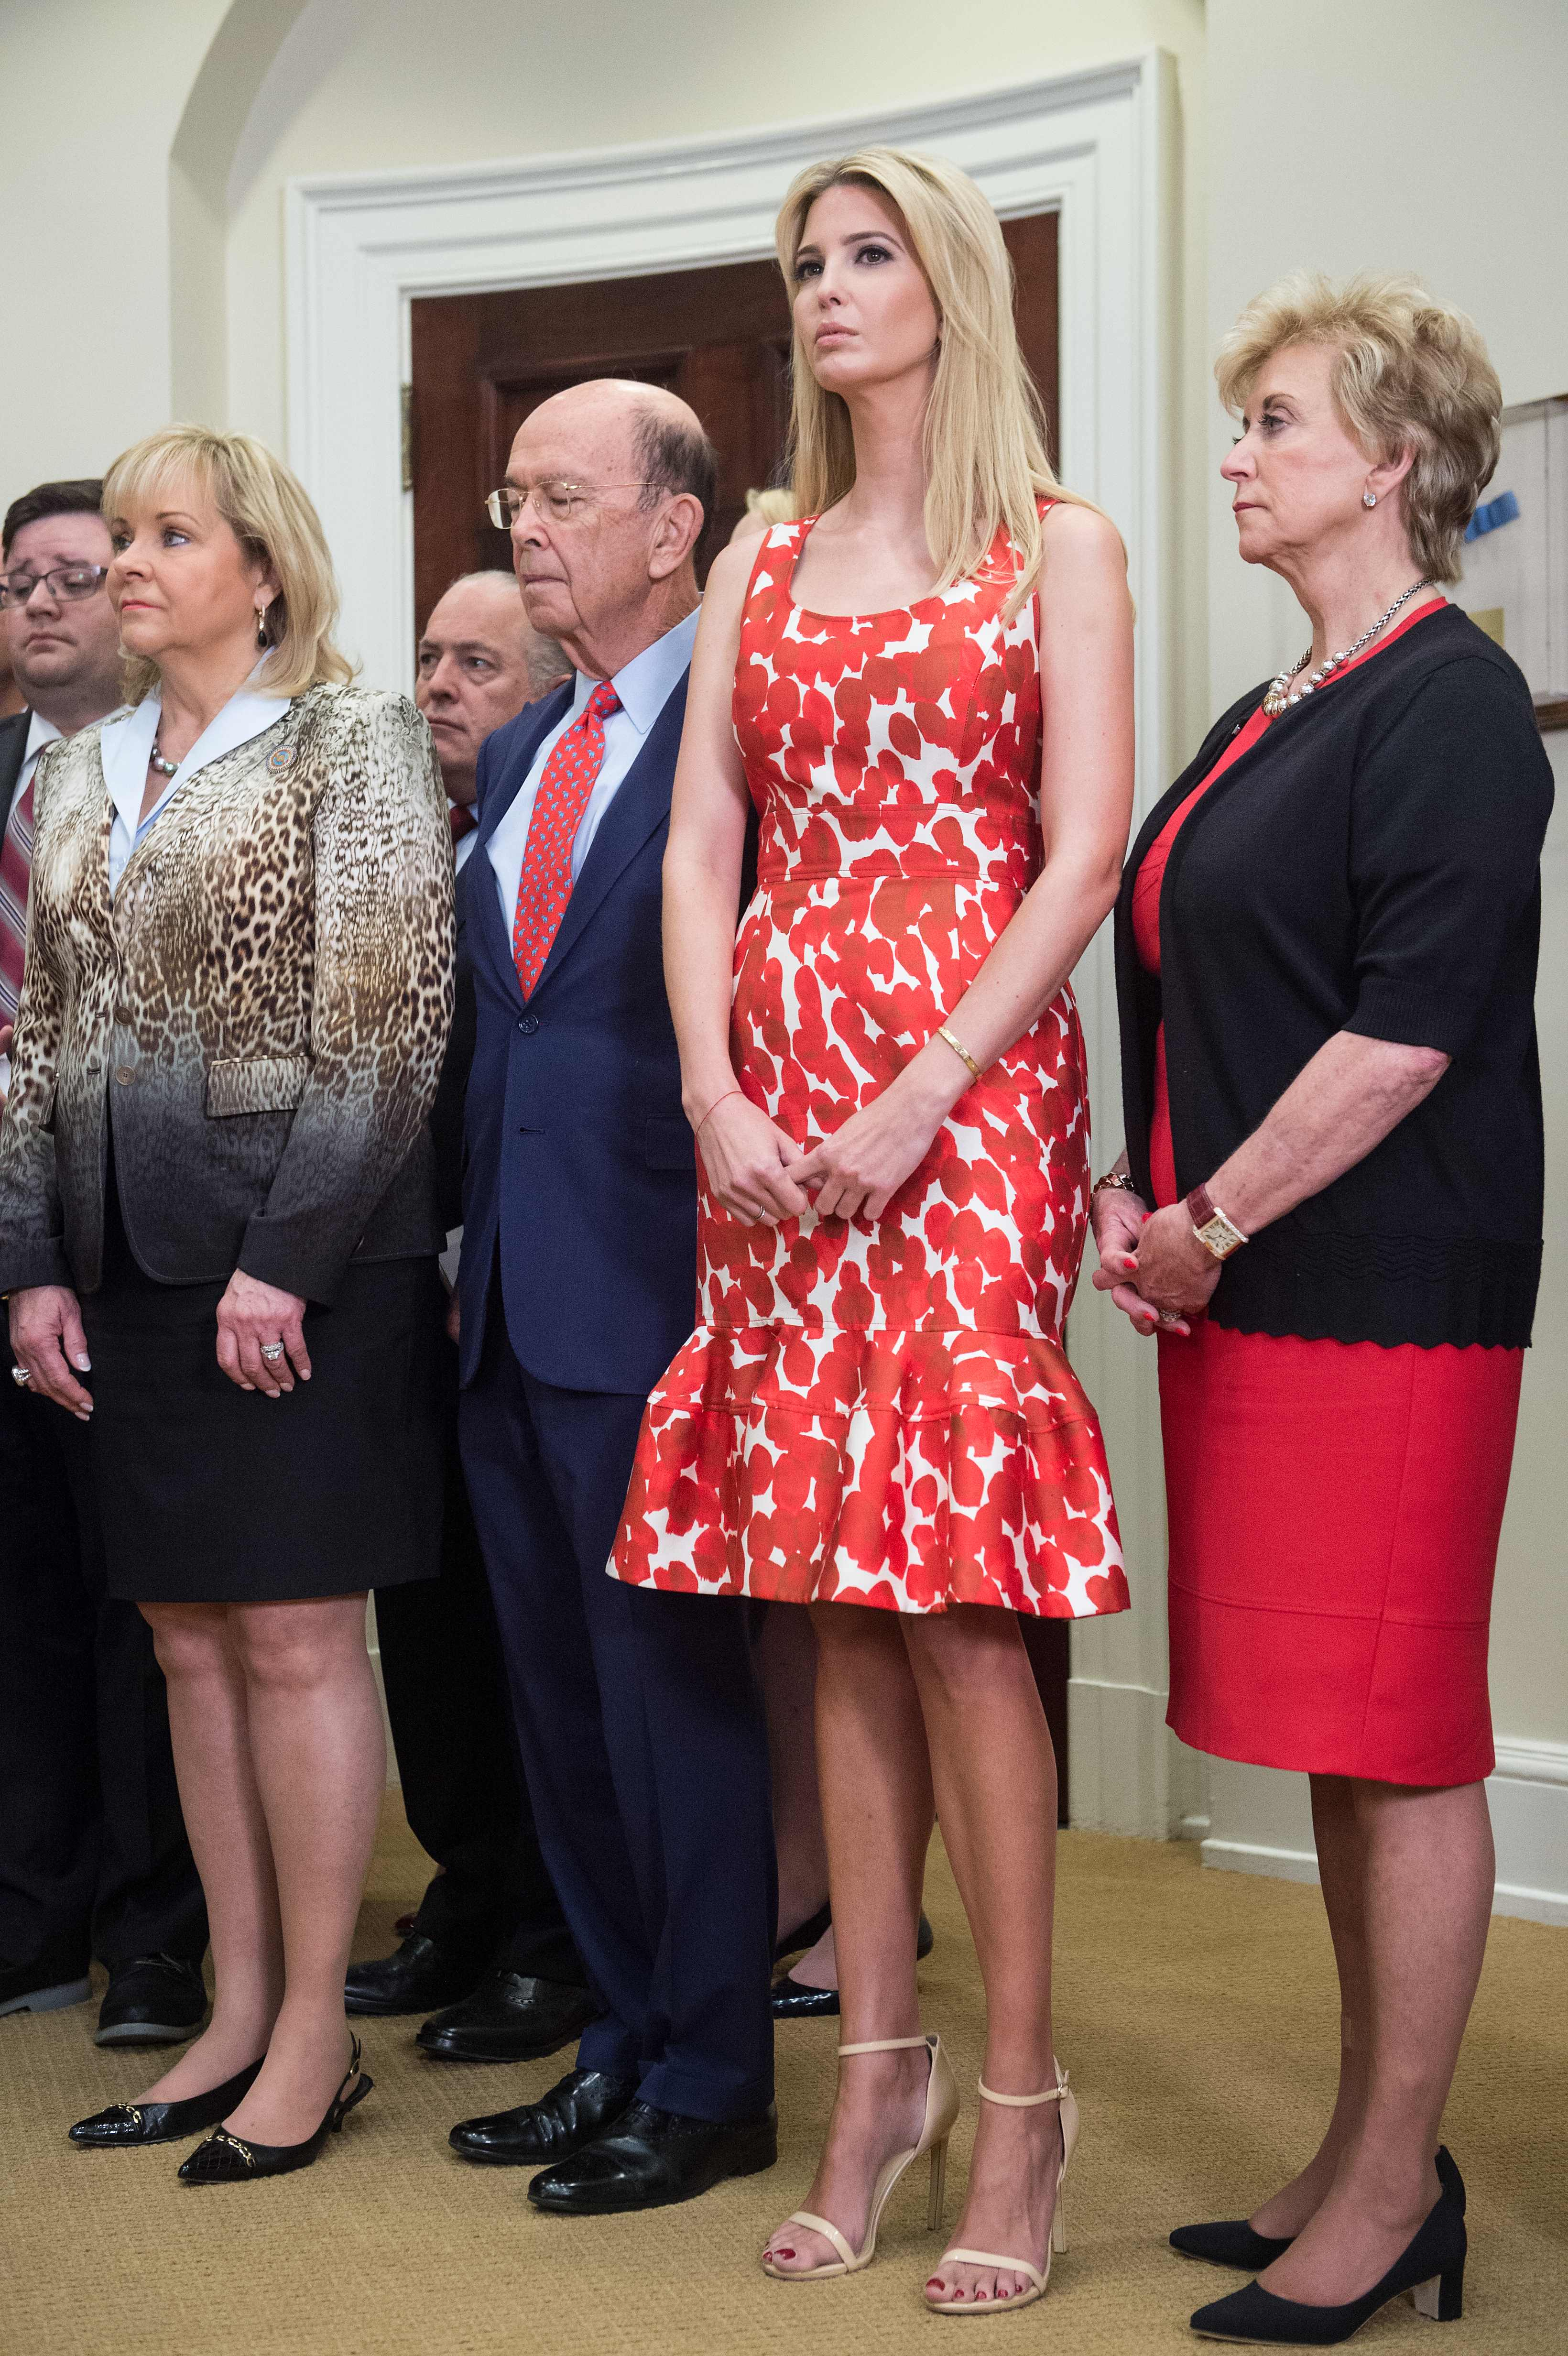 Ivanka Trump (2nd R), daughter and adviser of US President Donald Trump, listens to her father speak during the launch of the Apprenticeship and Workforce of Tomorrow initiatives in the Roosevelt Room at the White House in Washington, DC, on June 15, 2017.                                From L to R, Oklahoma Governor Mary Fallin, Commerce Secretary Wilbur Ross, Trump and Small Business Administration administrator Linda McMahon. / AFP PHOTO / NICHOLAS KAMM        (Photo credit should read NICHOLAS KAMM/AFP/Getty Images)